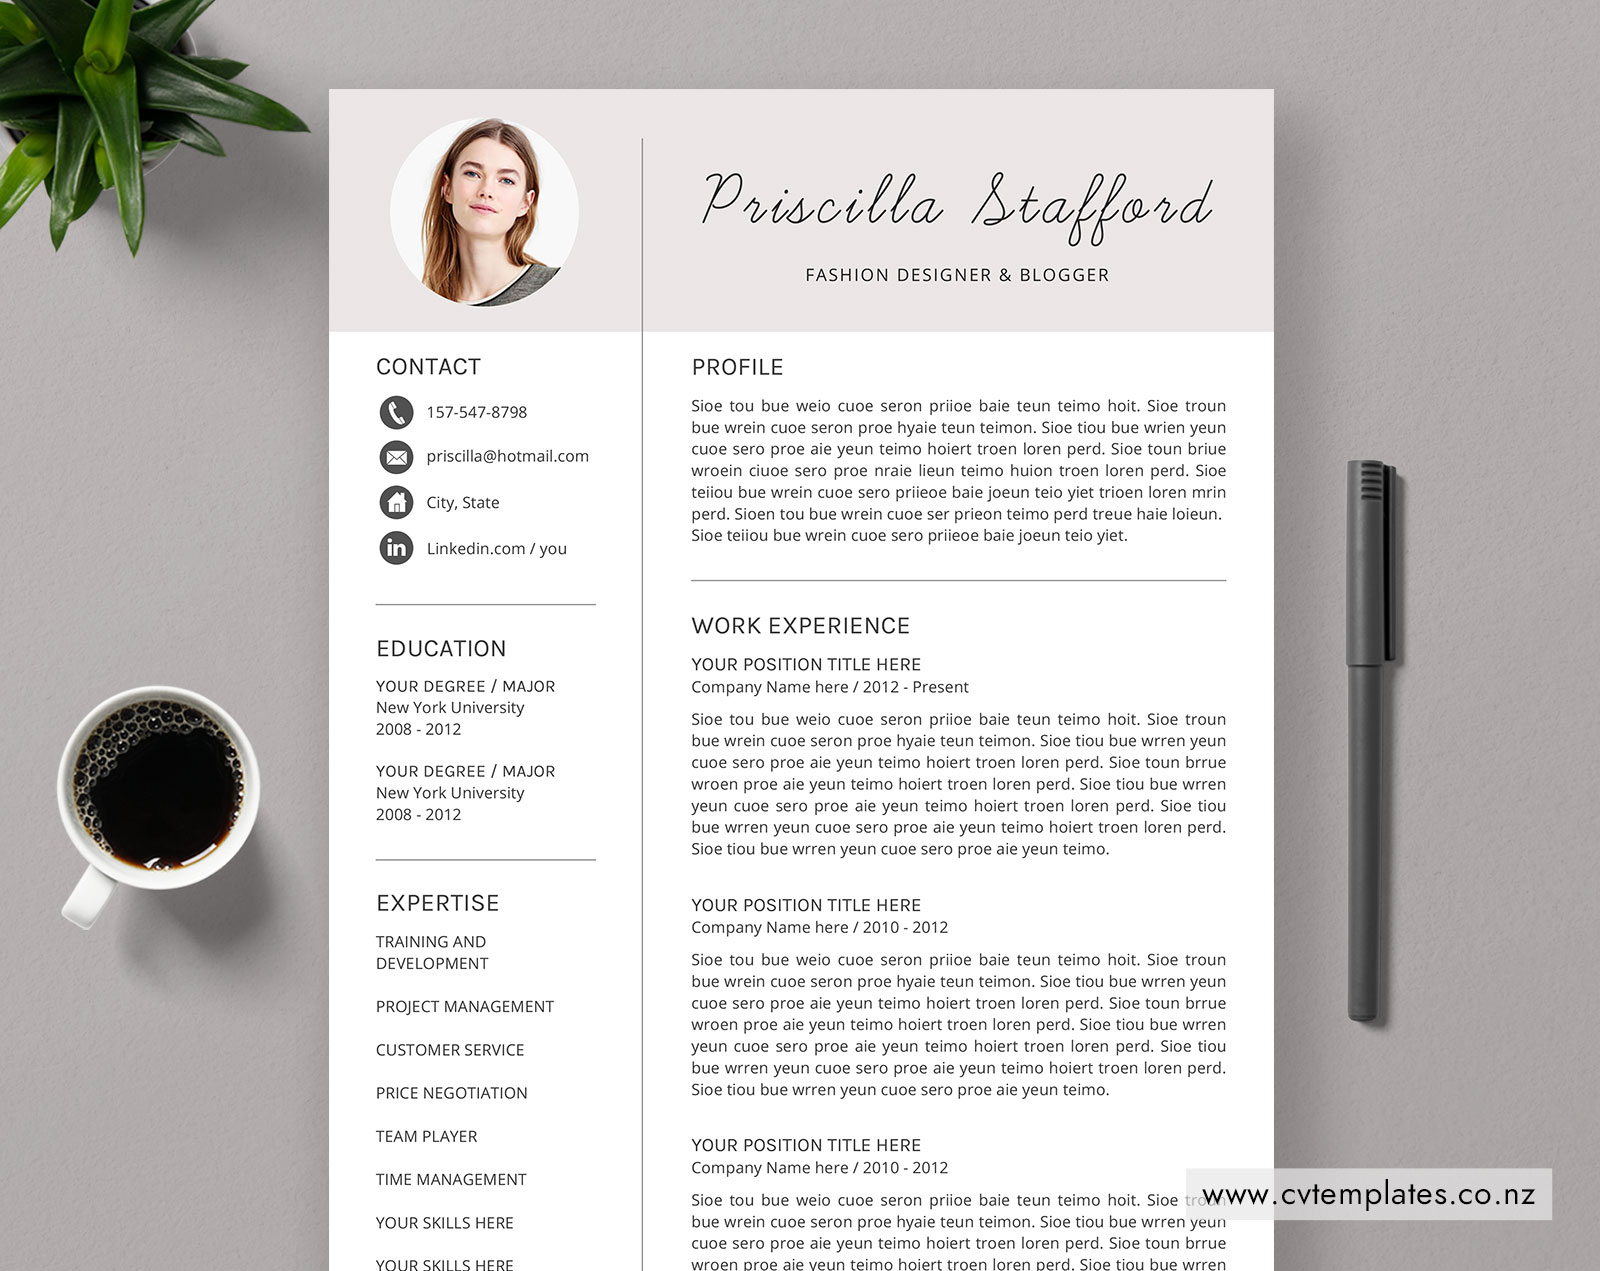 Cv Template For Ms Word Curriculum Vitae Simple Cv Template Design Cover Letter 1 2 And 3 Page Resume Fashion Resume Template Modern Resume Template Instant Download Cvtemplates Co Nz